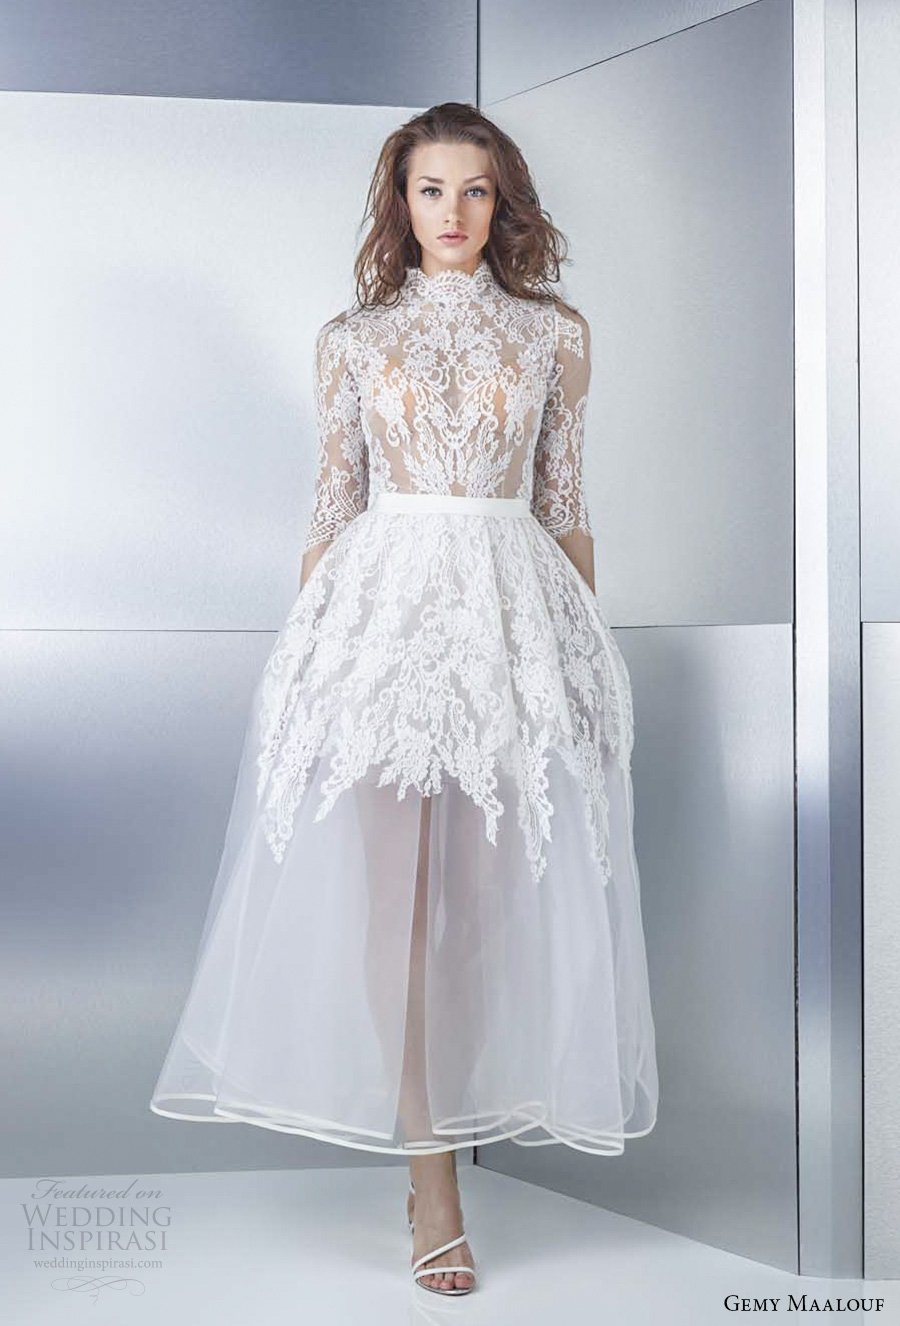 Gemy Maalouf 2017 Bridal Half Sleeves High Neck Heavily Embellished Bodice Tea Length Short Wedding